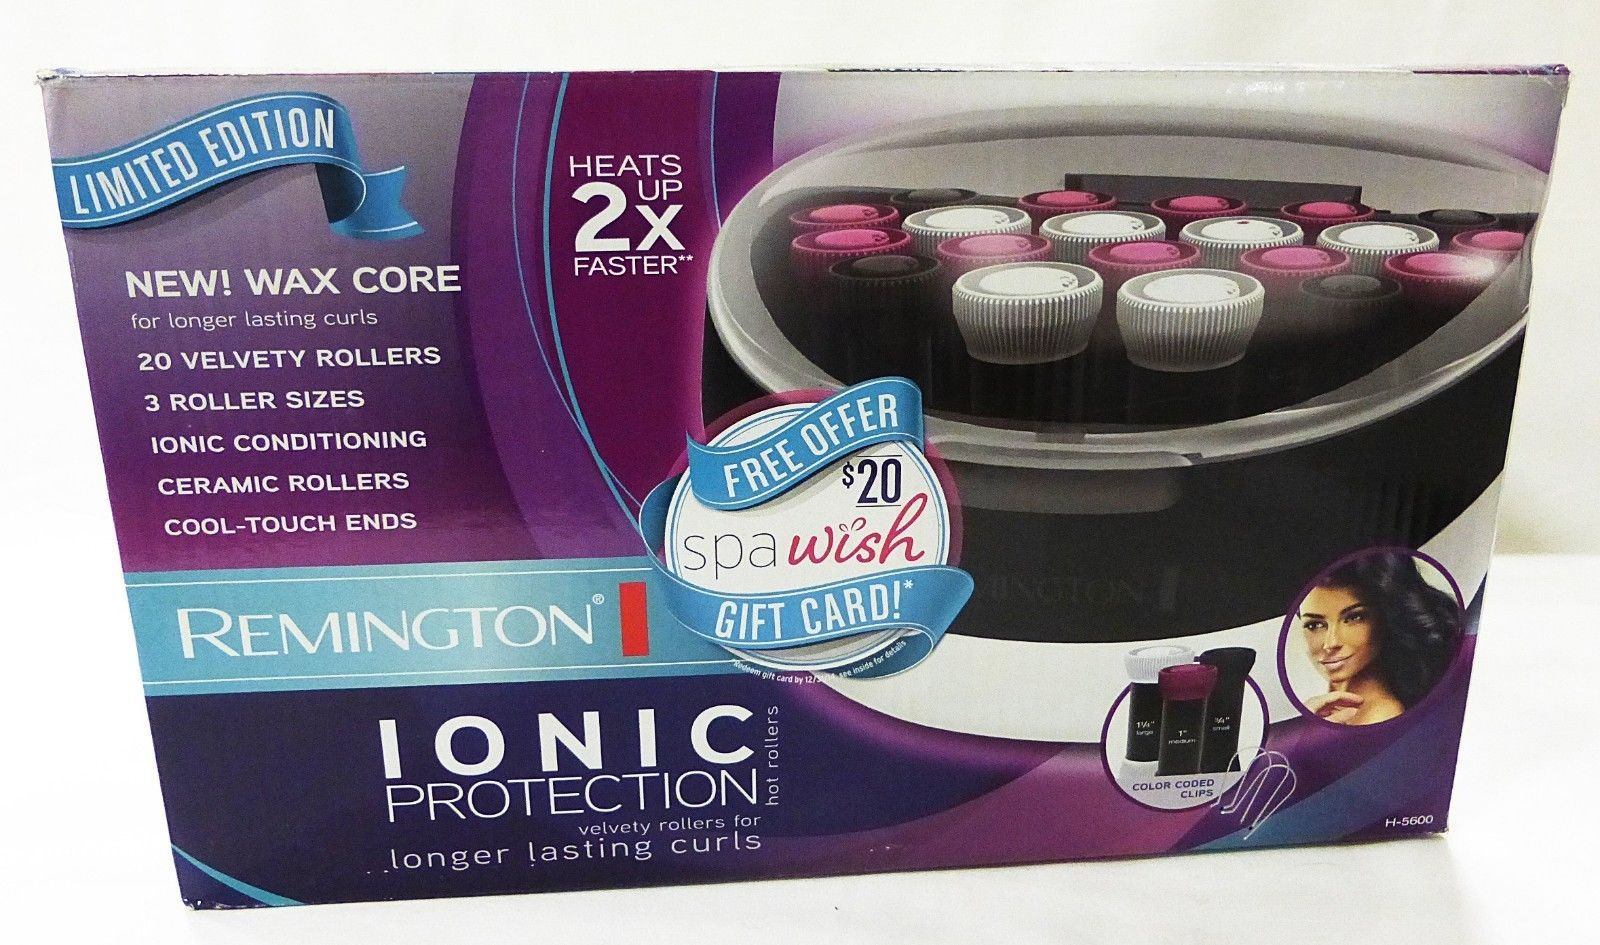 Remington ionic protection limited edition ceramic rollers and clips